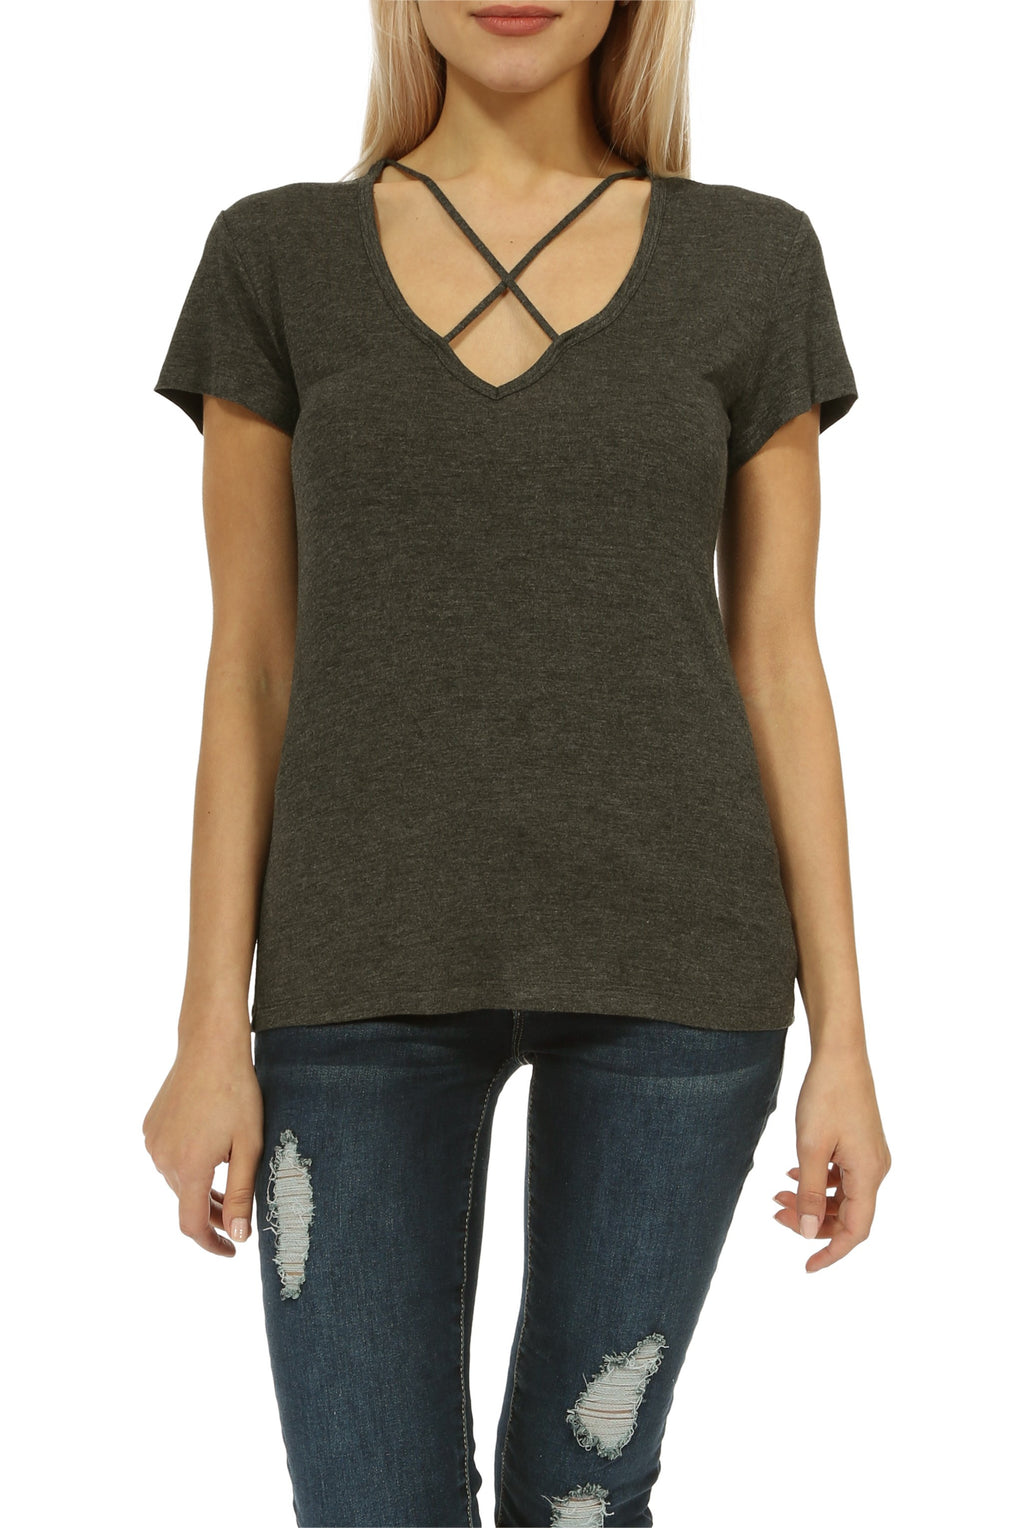 Teeze Me | Short Sleeve V Neck Cross Front Casual Top  | Charcoal - Teeze Me